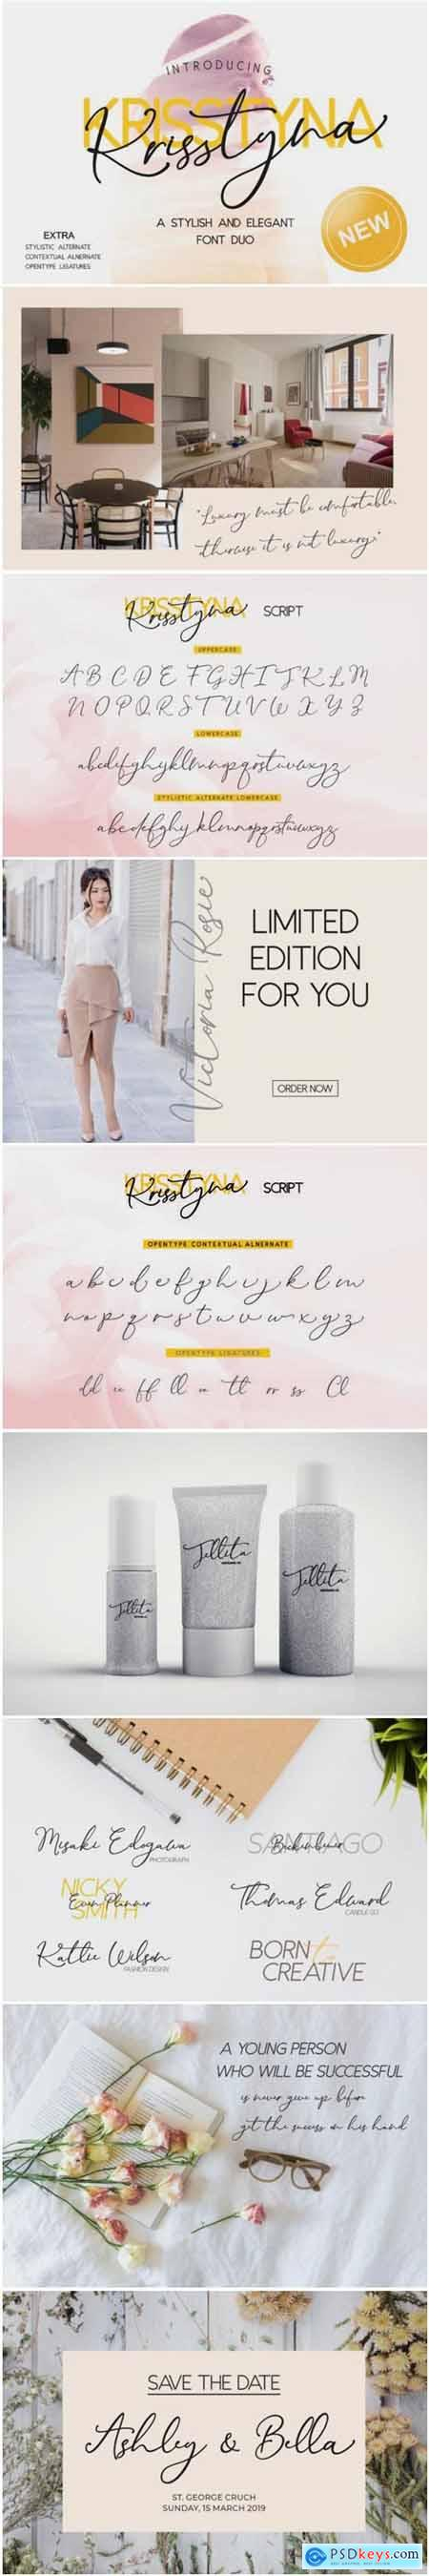 Krisstyna Duo Font